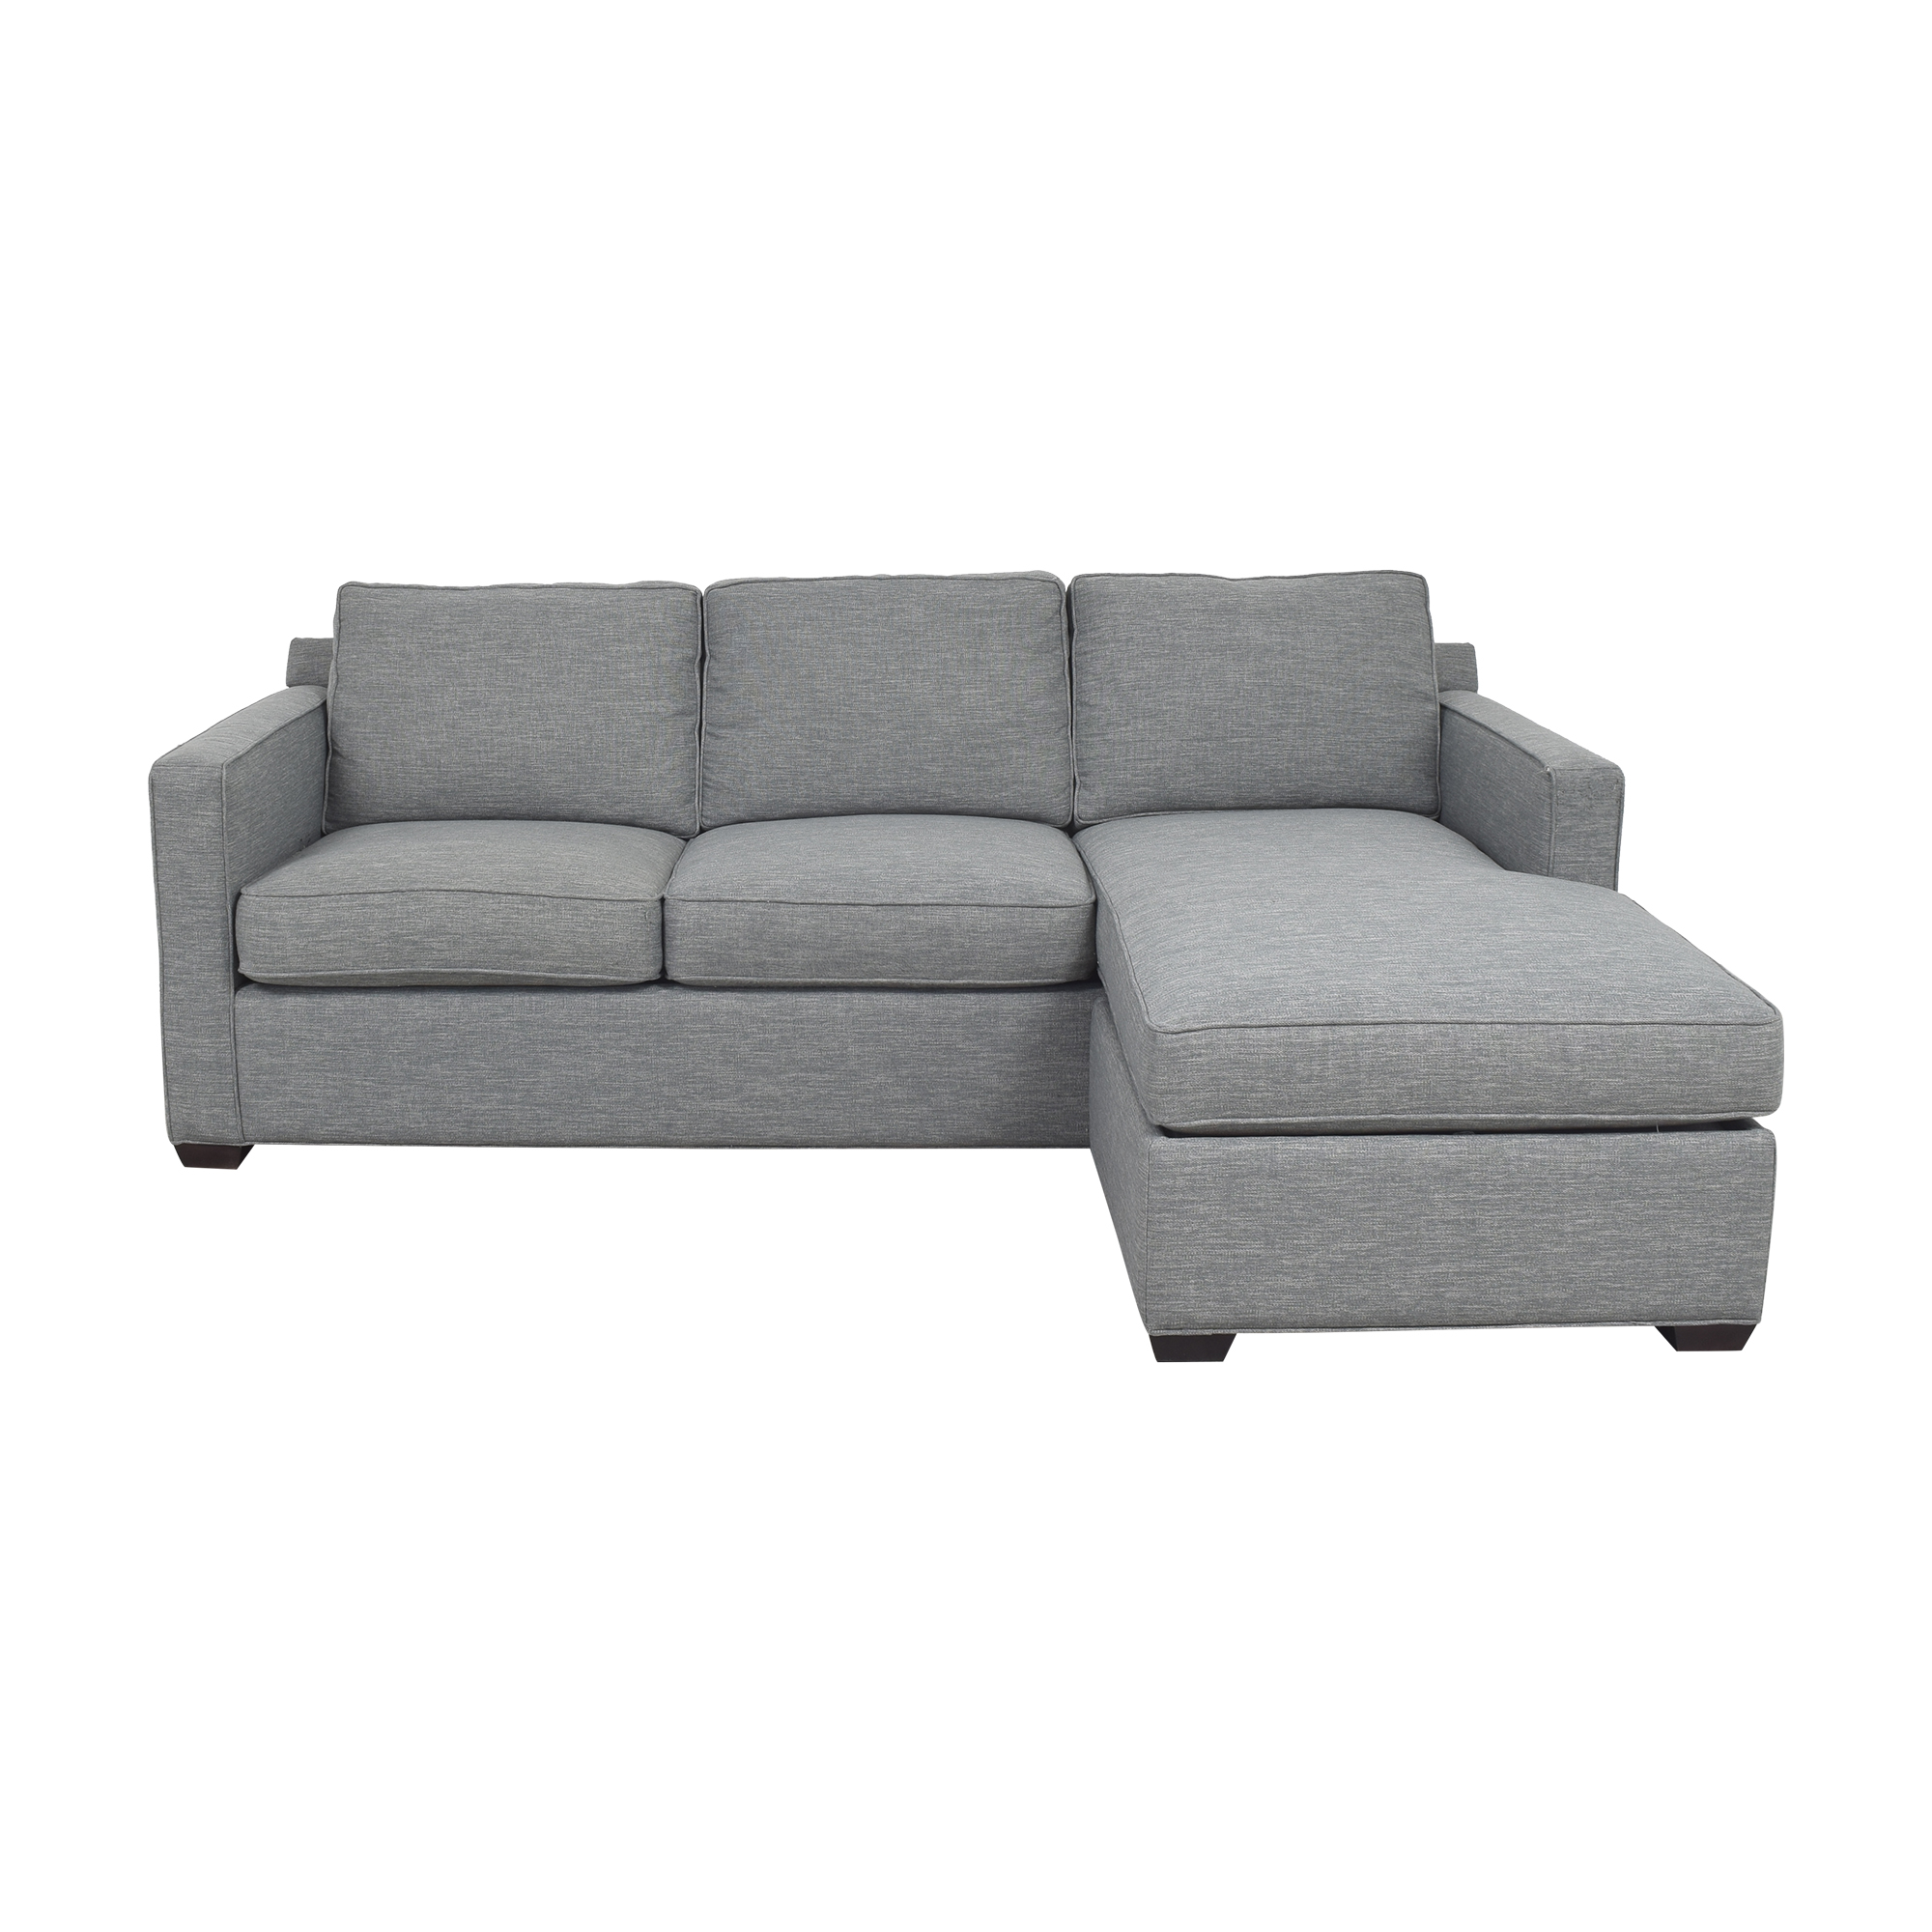 buy Crate and Barrel Sectional Sofa with Chaise Crate & Barrel